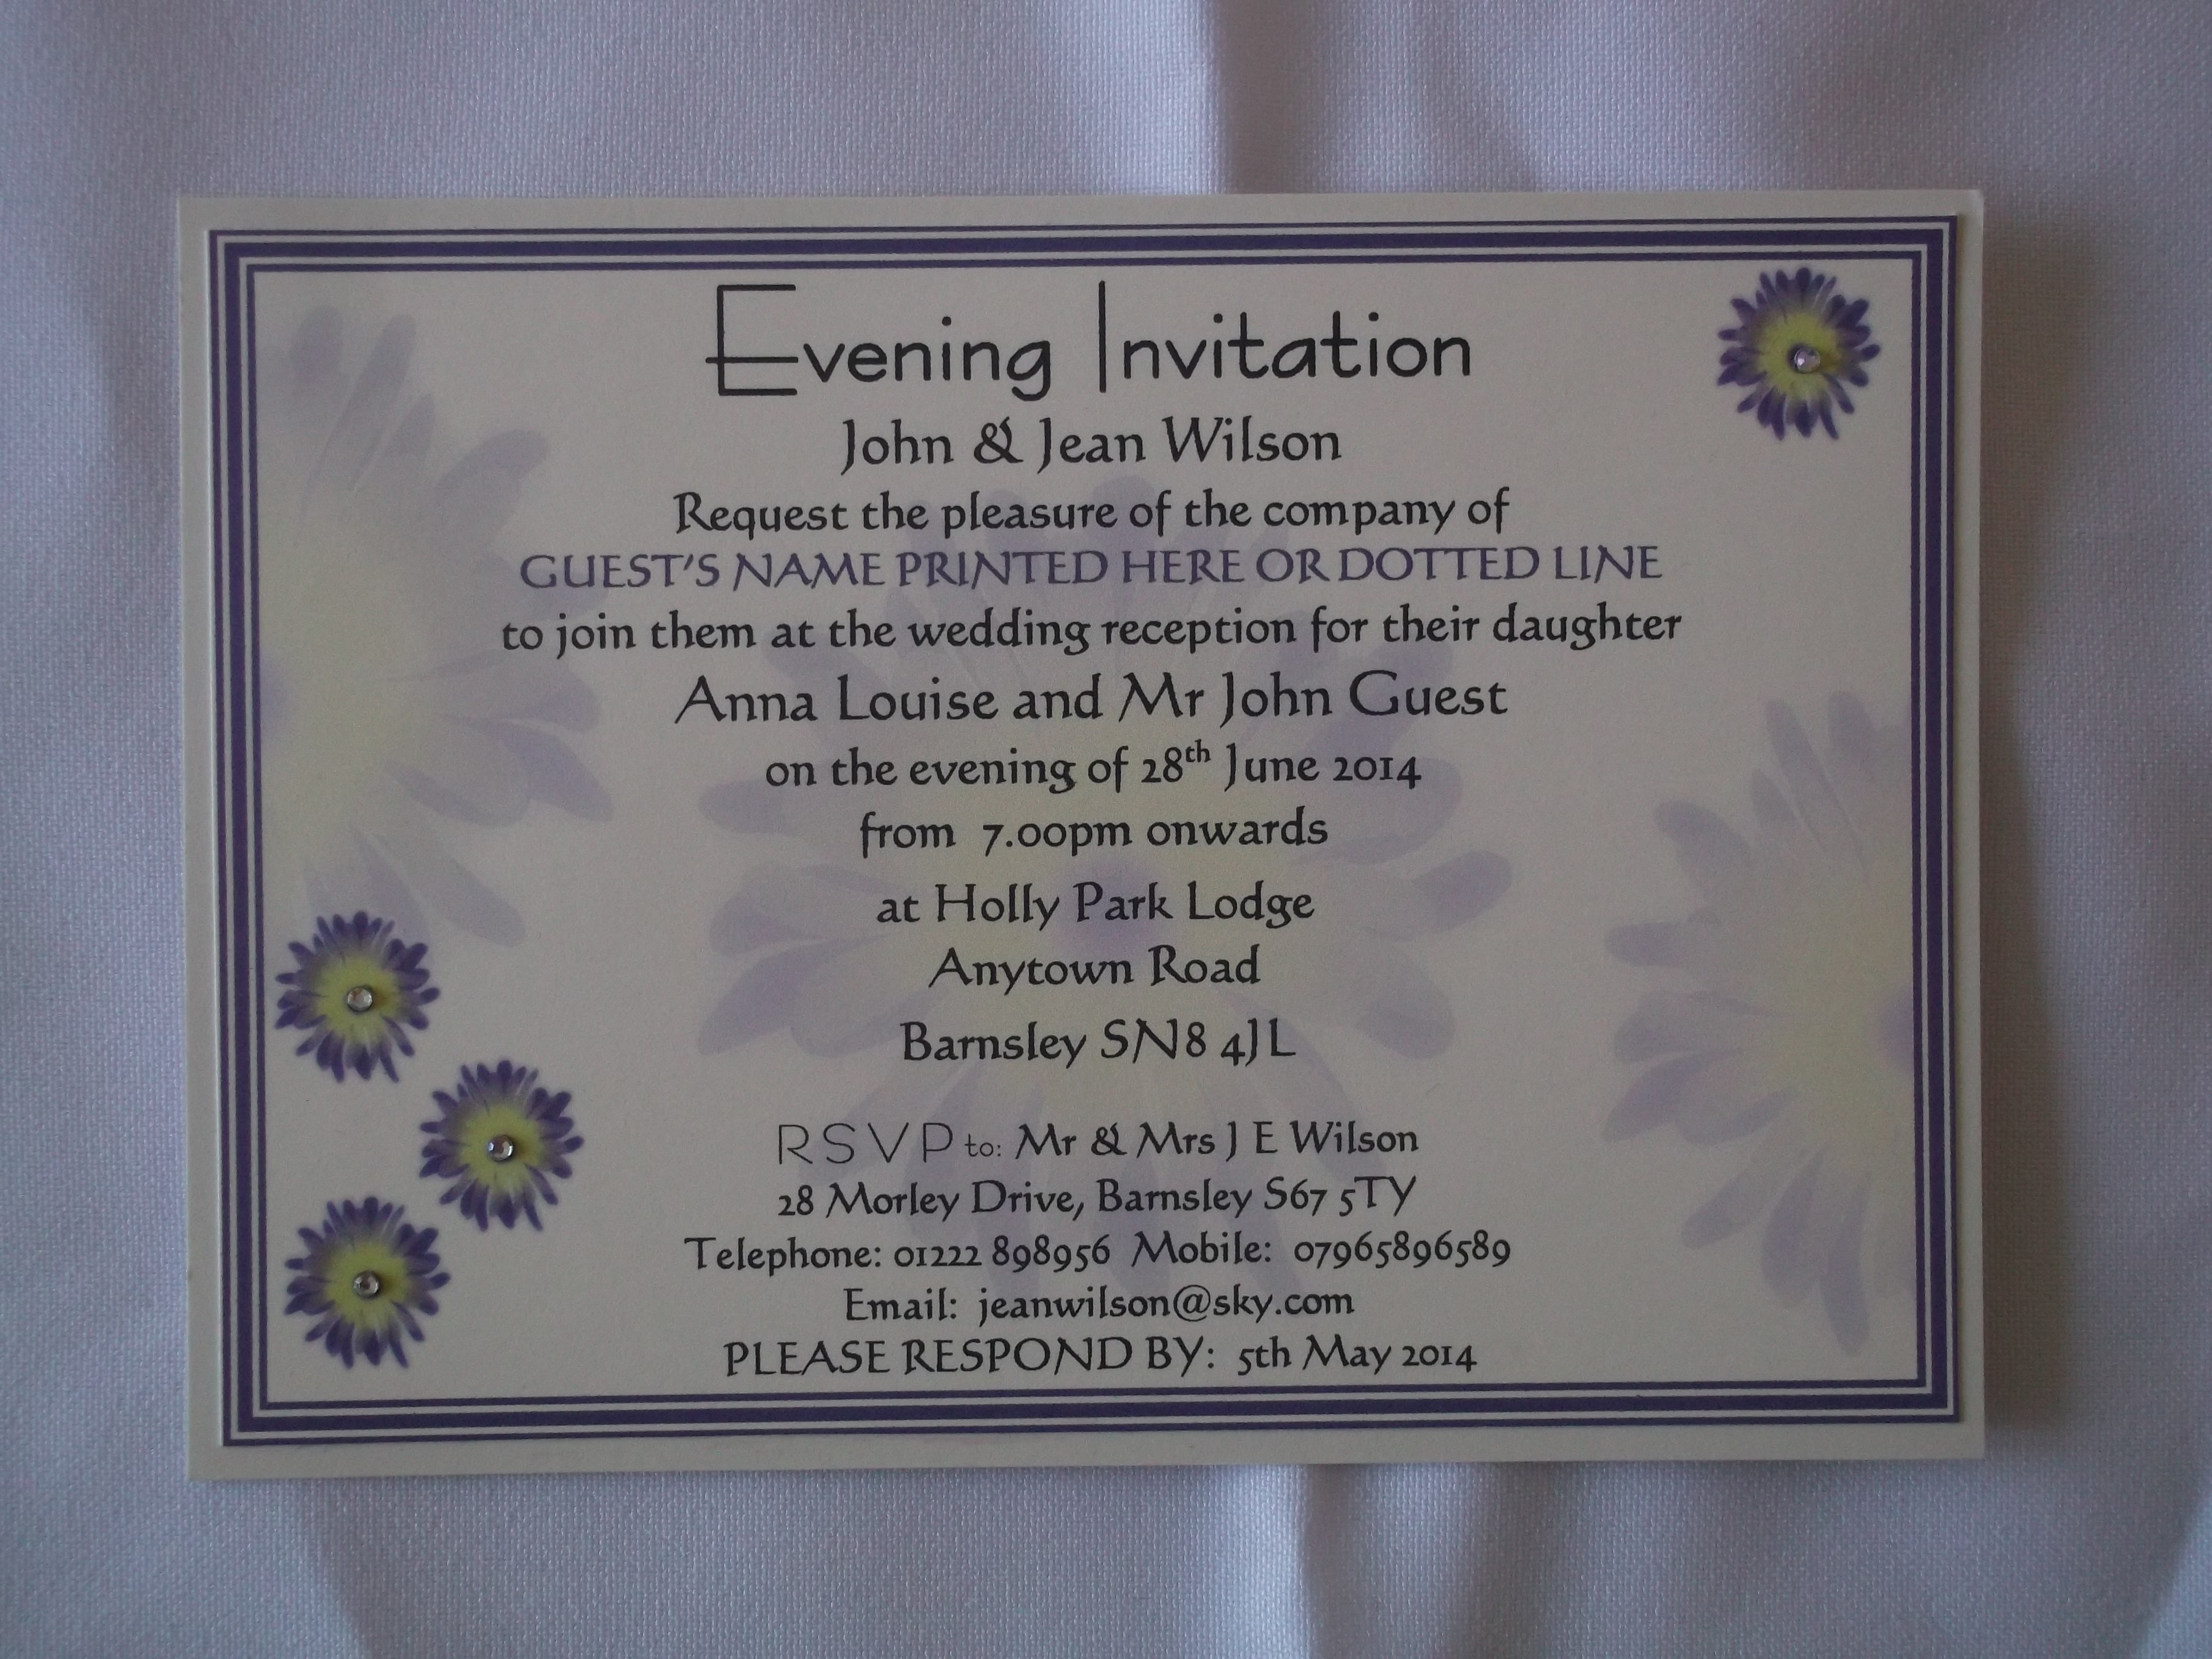 Gerbera Groove Evening invitation